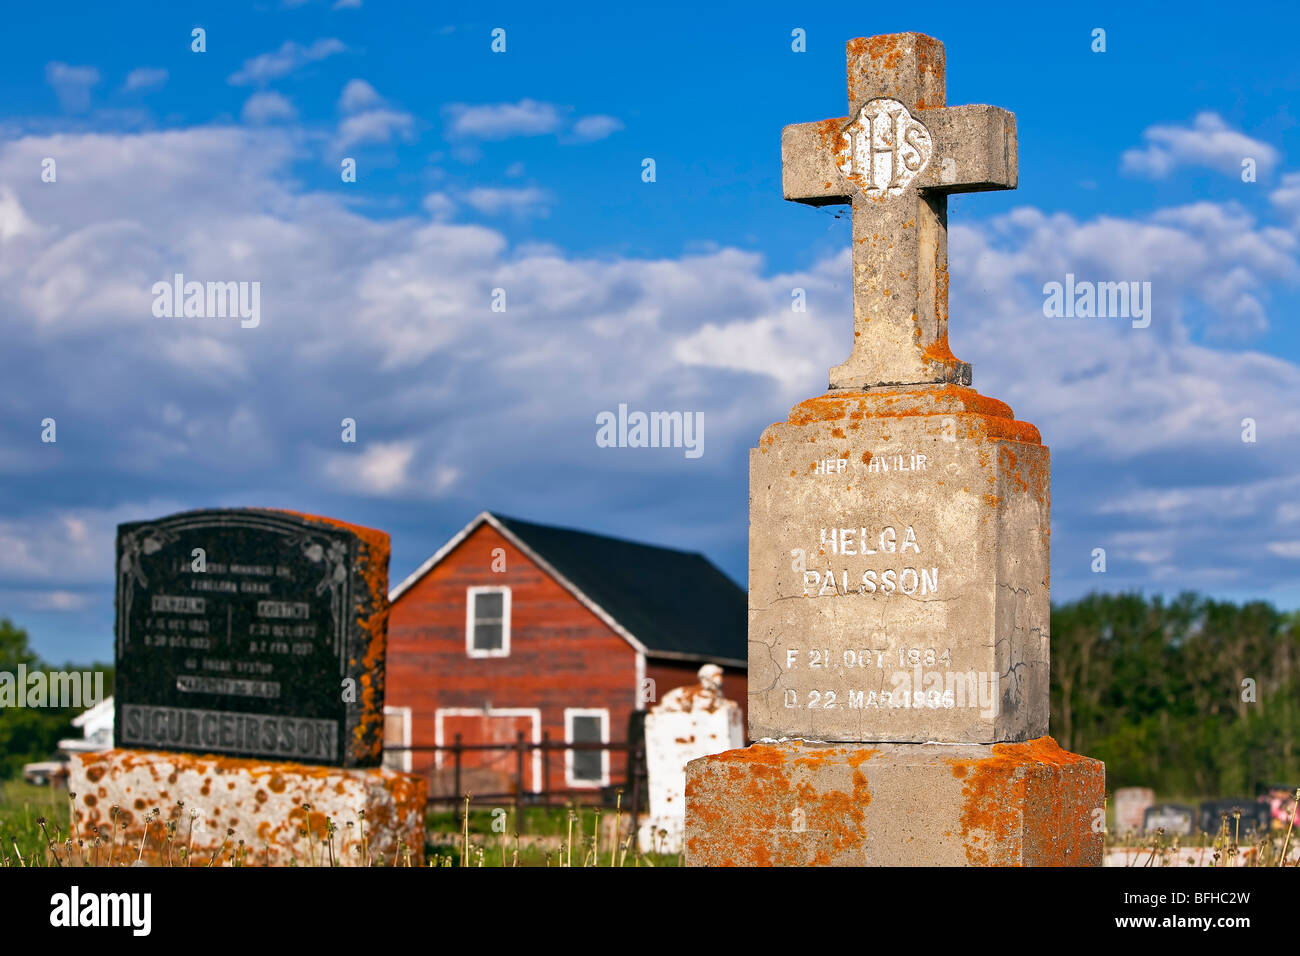 Grave markers in Icelandic Cemetary, Hecla Village, Hecla Island Provincial Park, Manitoba, Canada. - Stock Image